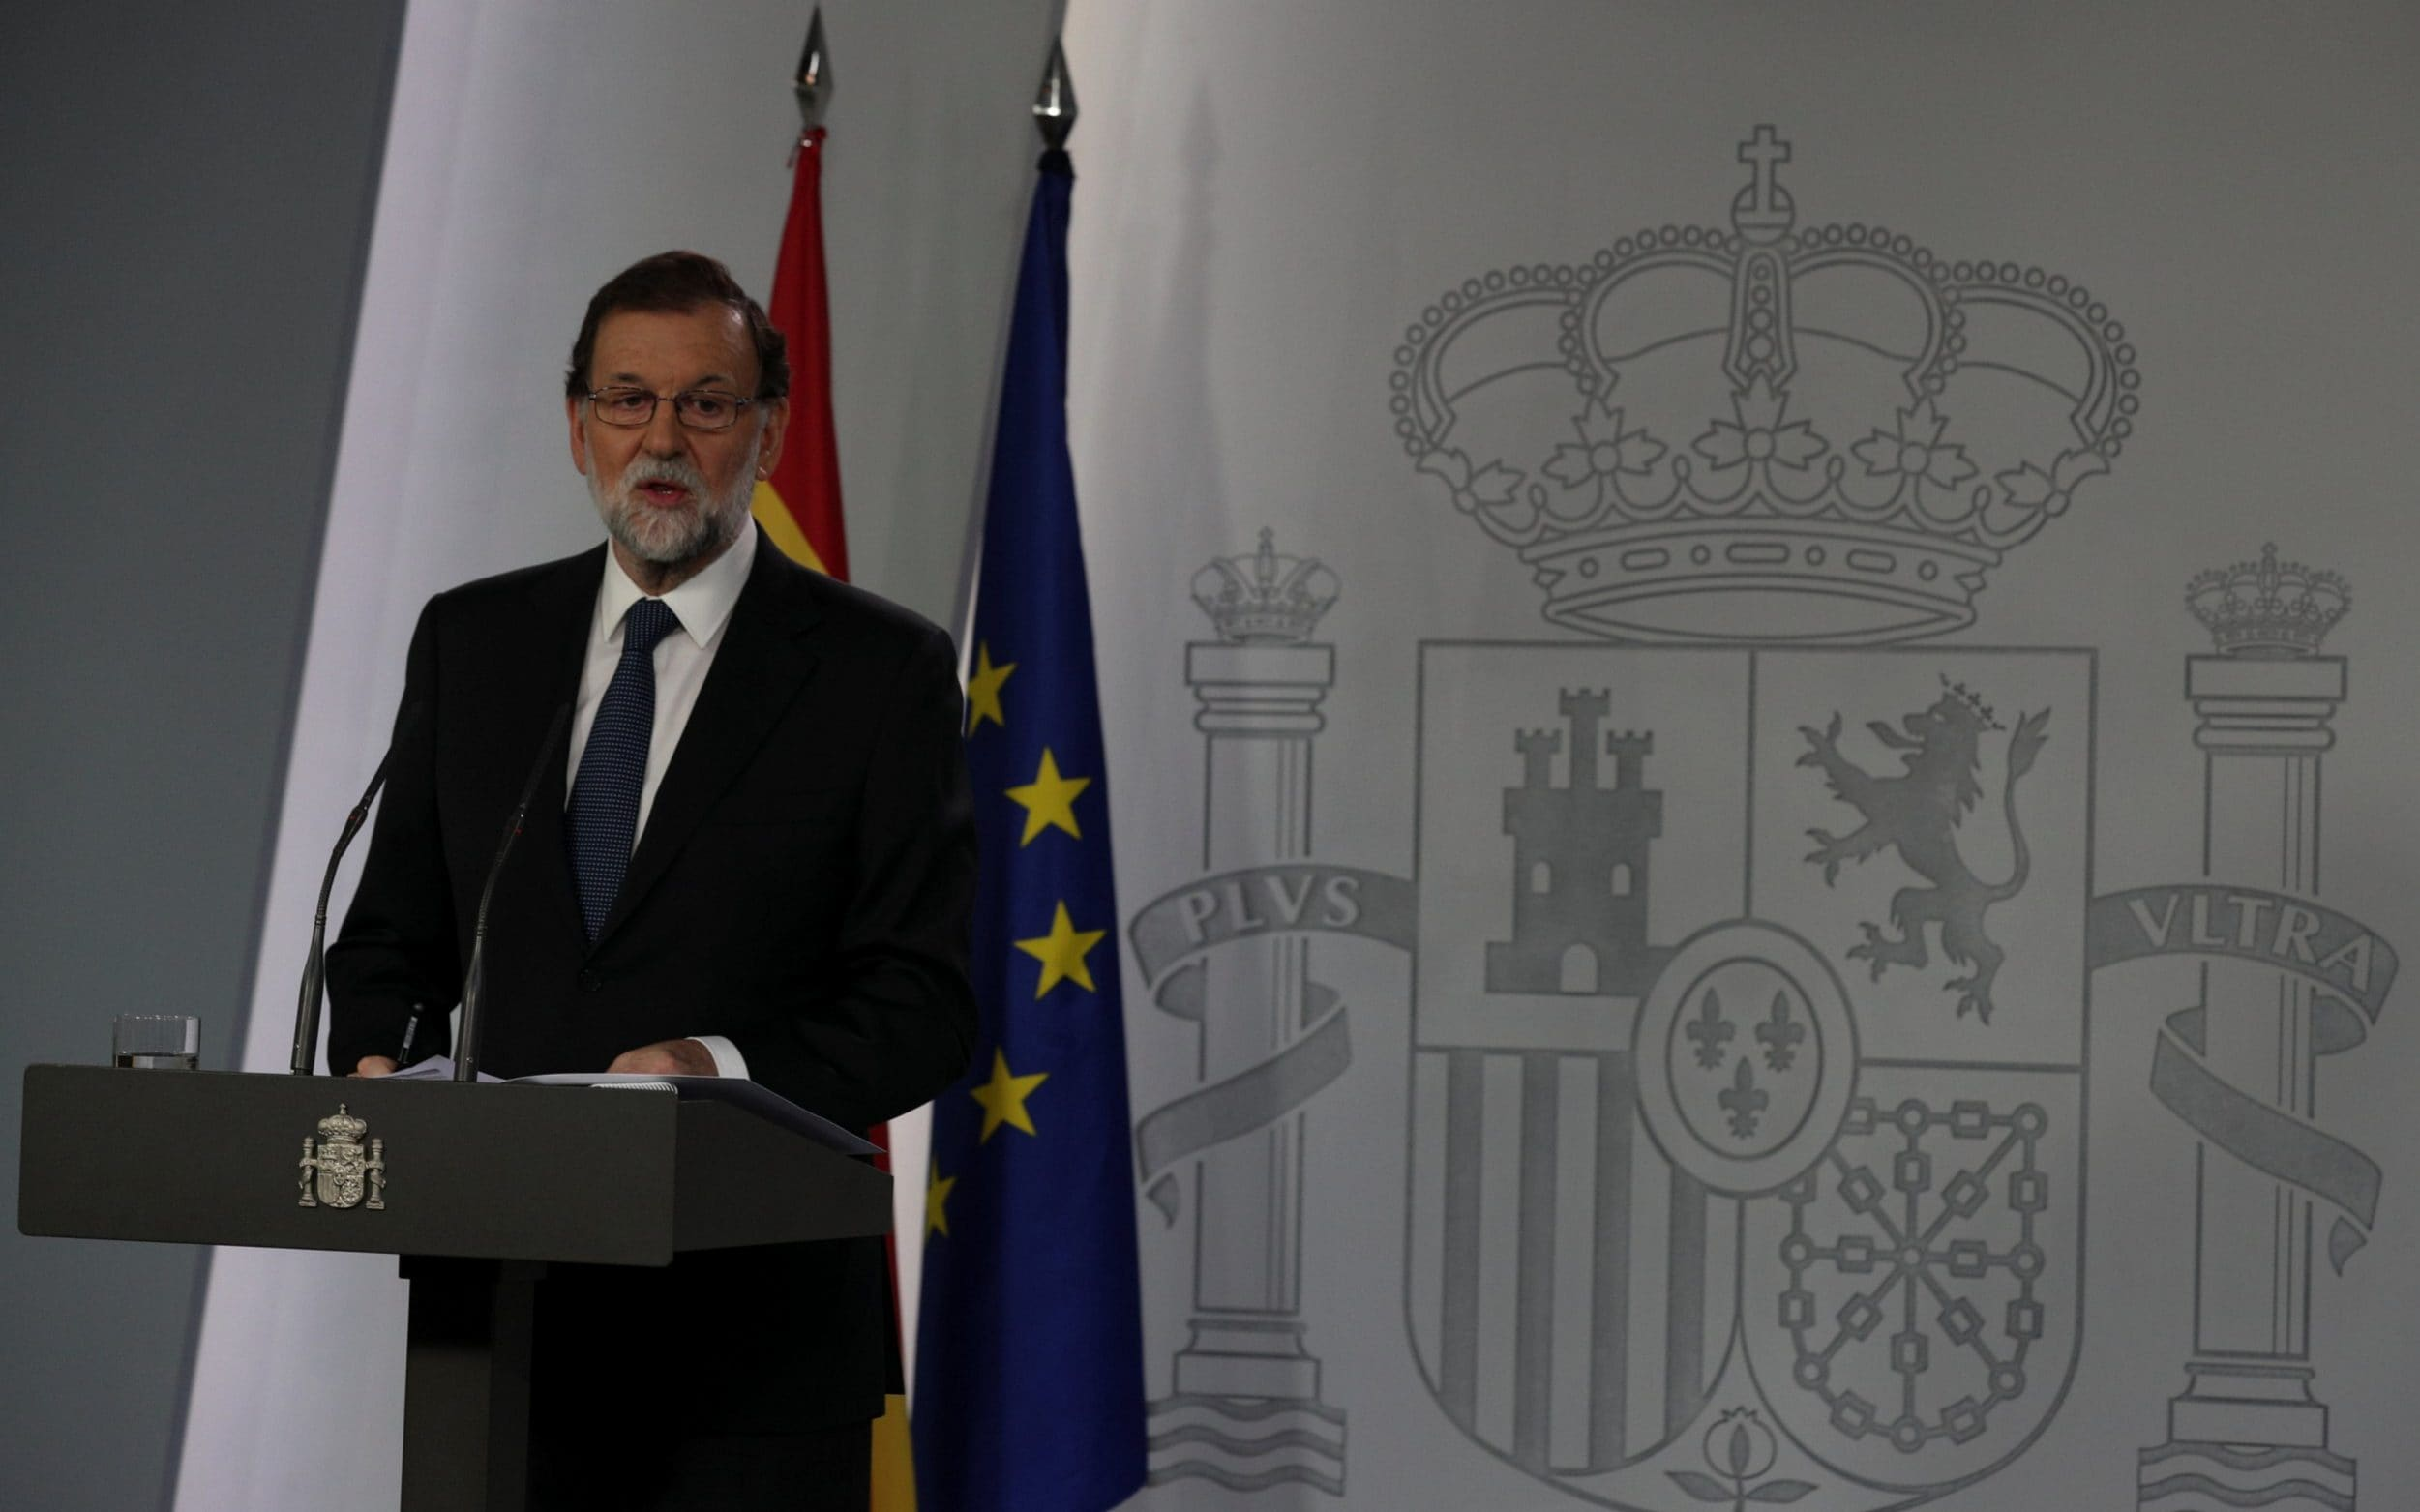 Spain's Prime Minister Mariano Rajoy delivers a statement at the Moncloa Palace in Madrid